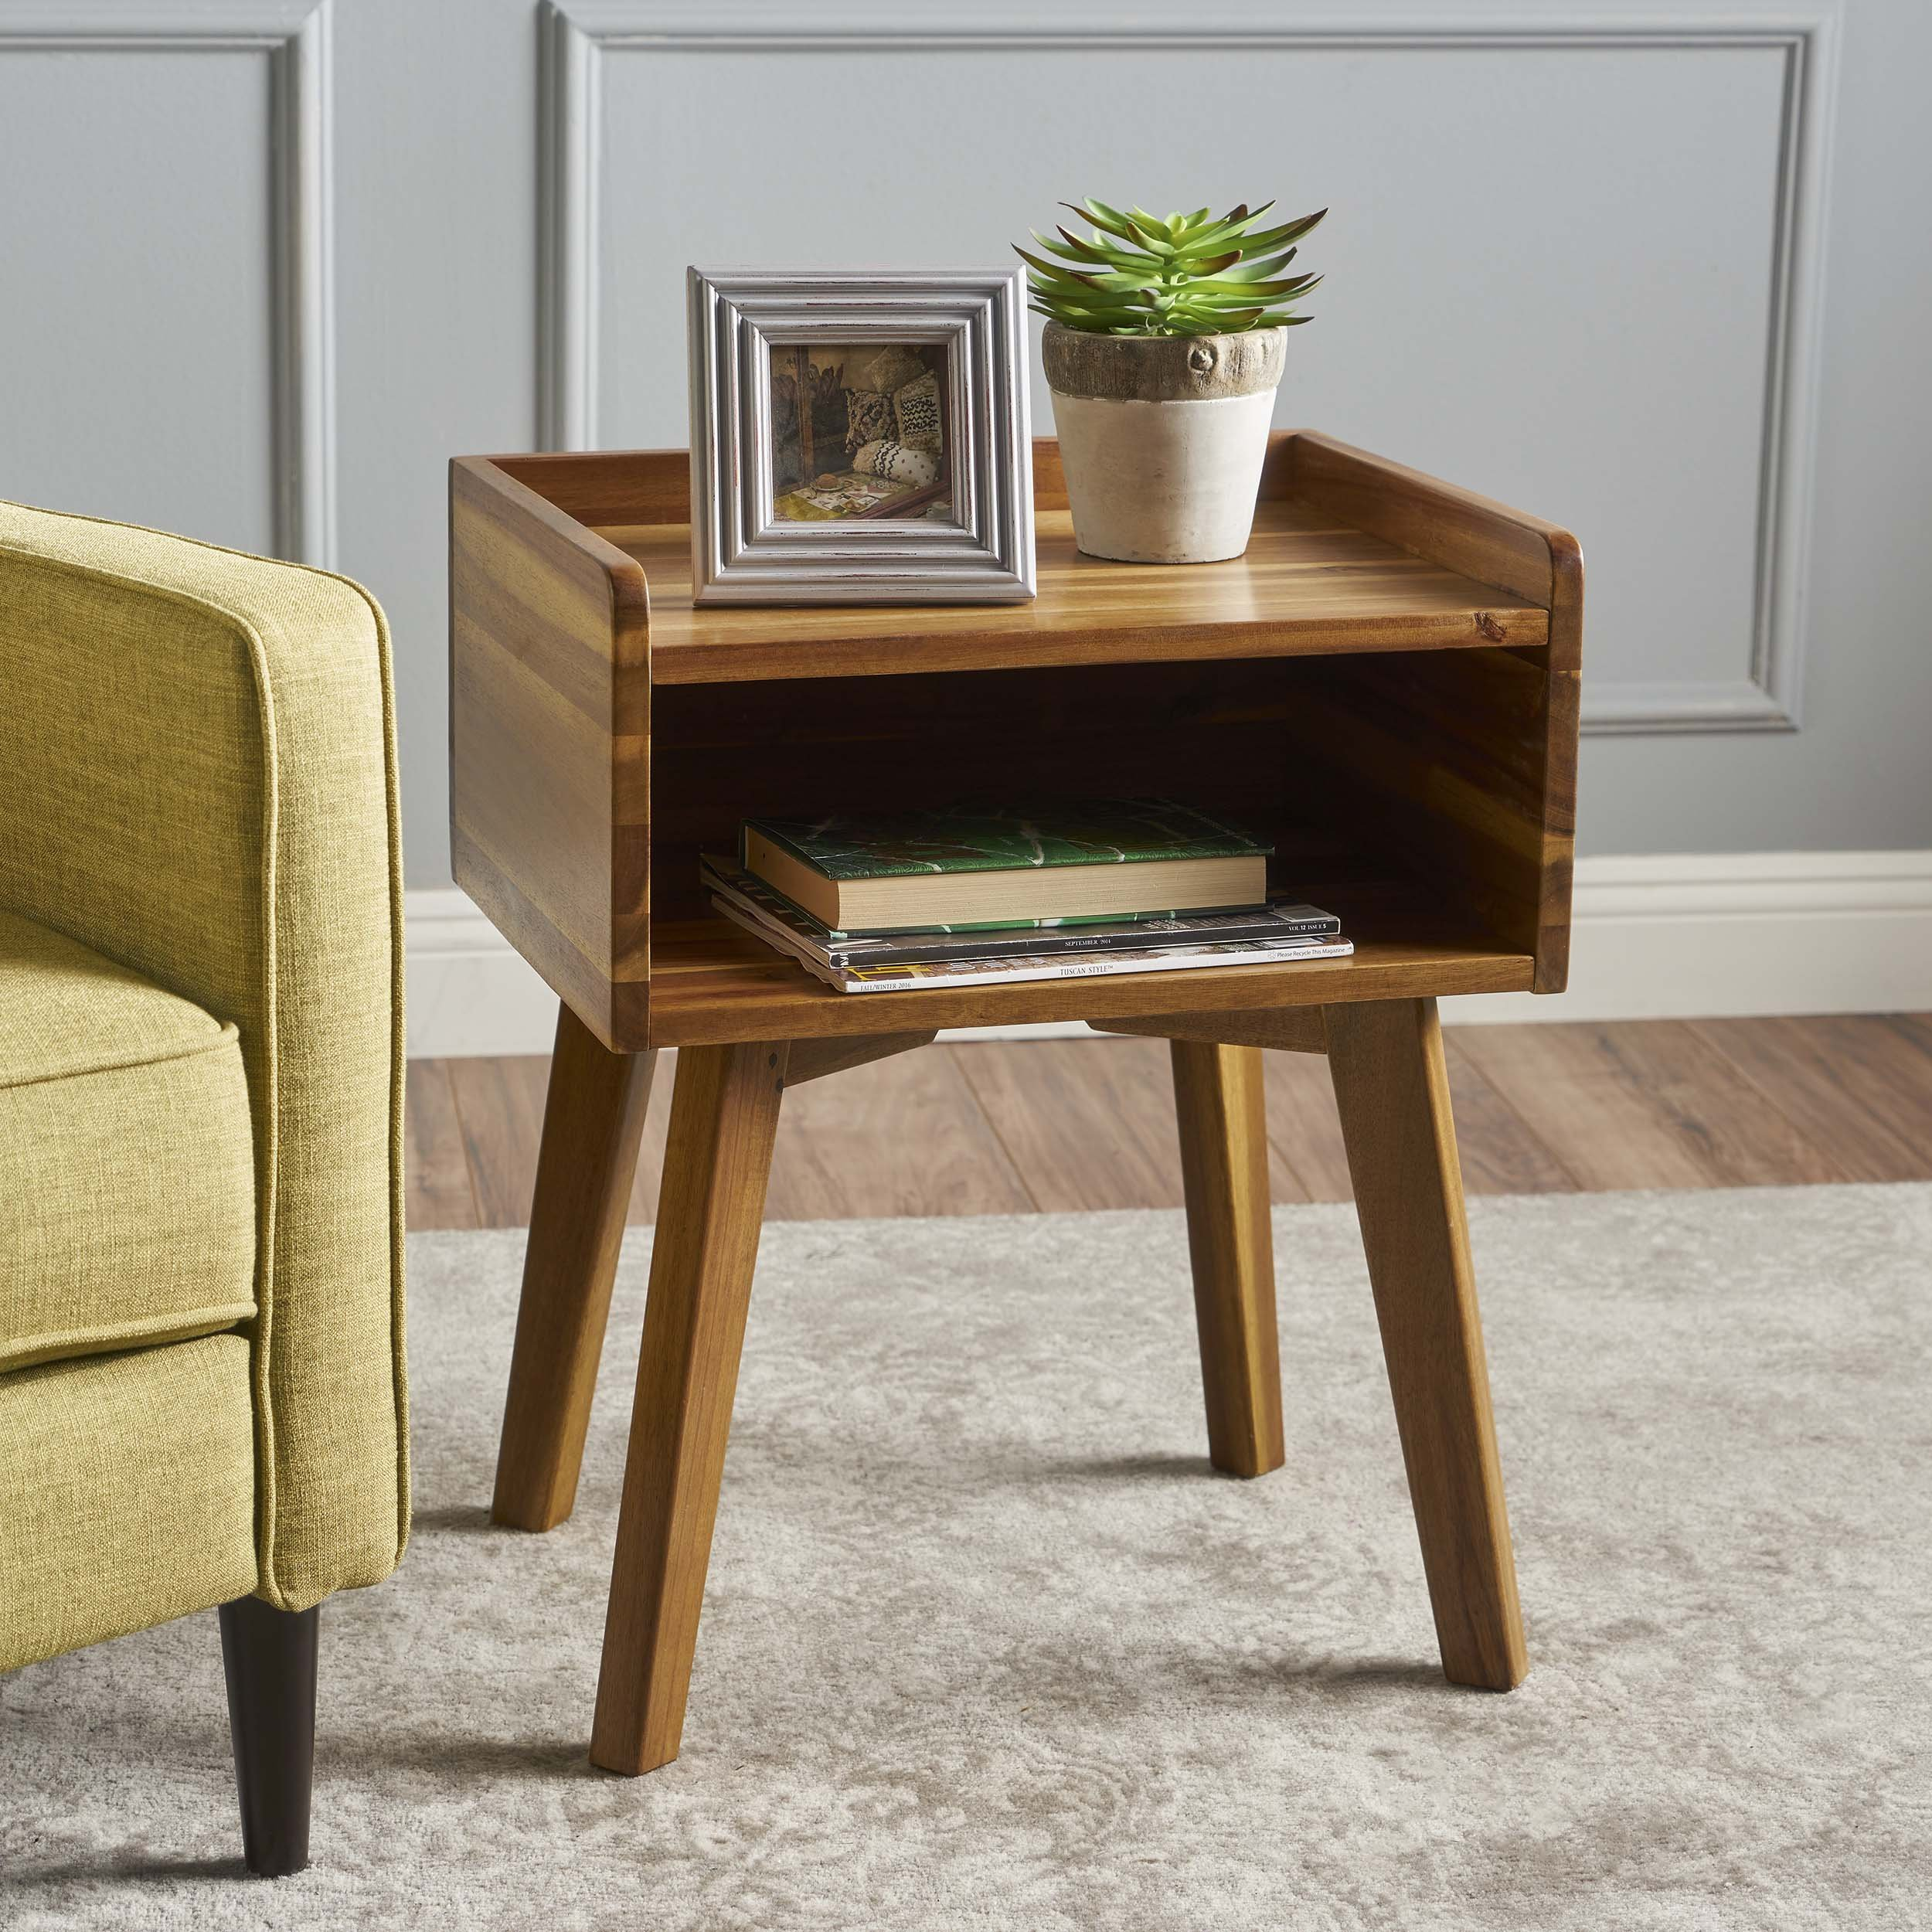 Alanna Natural Stained Acacia Wood Nightstand